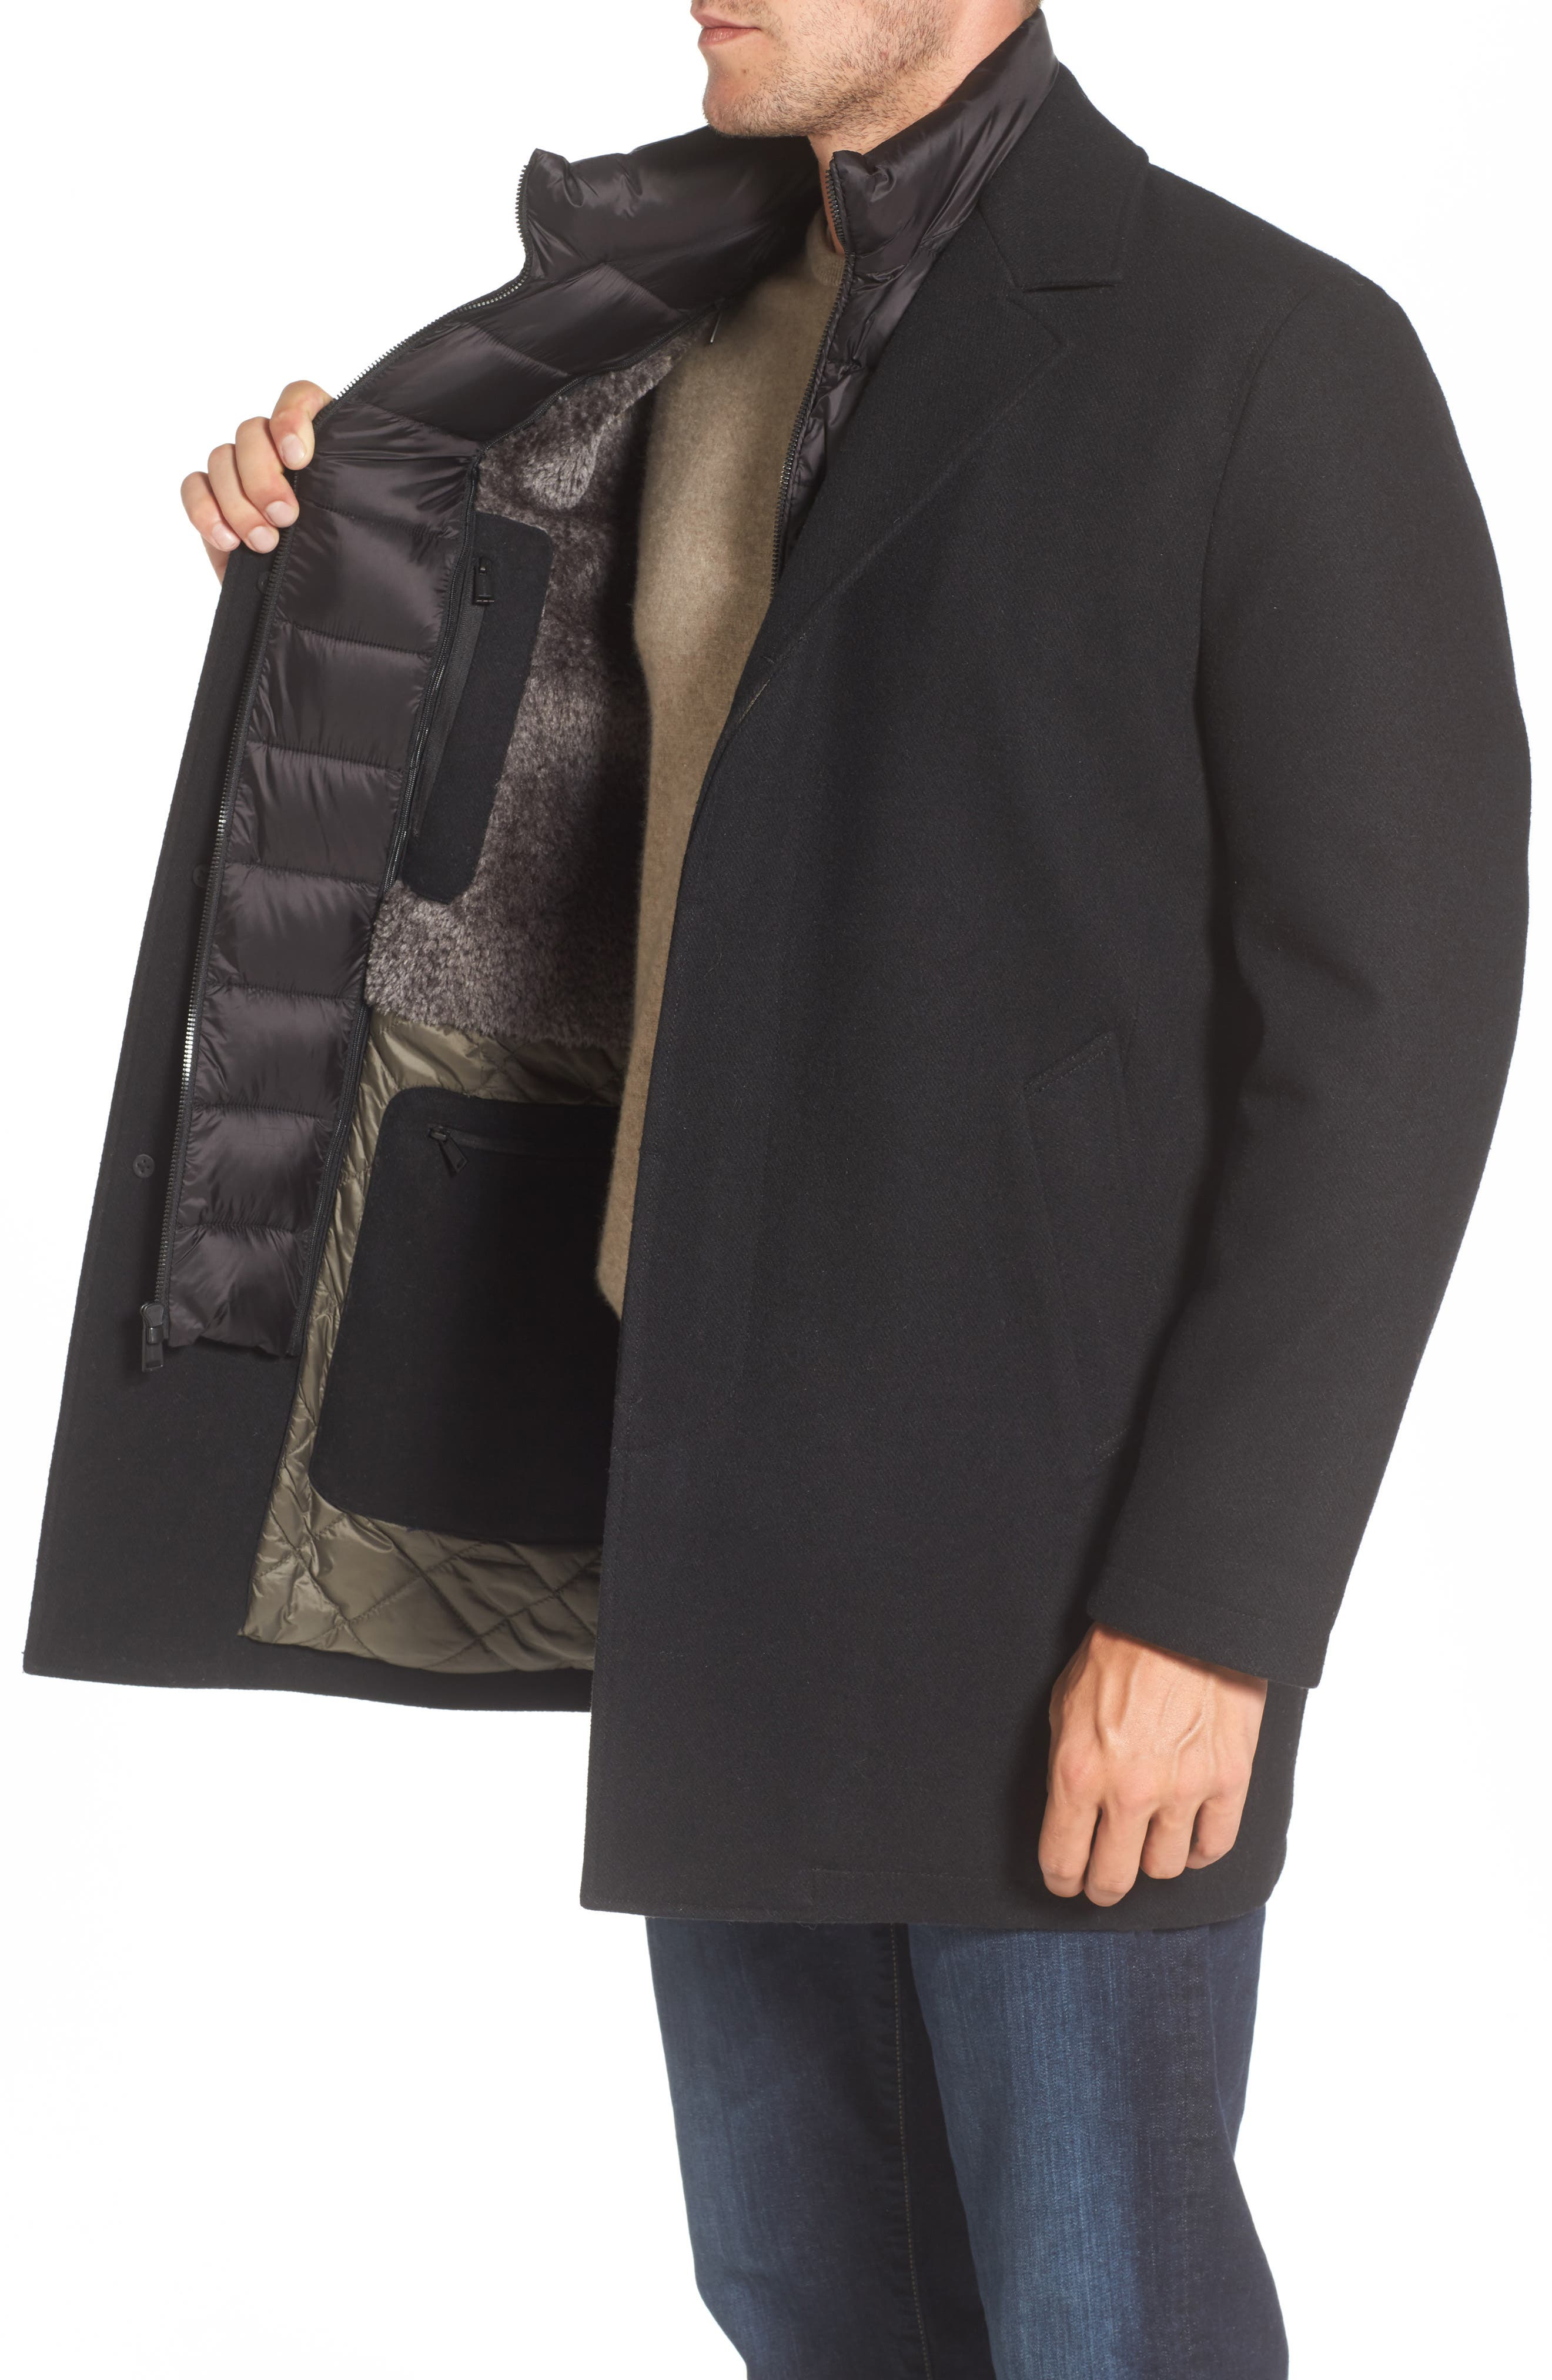 Water Repellent Jacket with Inset Bib & Faux Fur Lining,                             Alternate thumbnail 3, color,                             Black